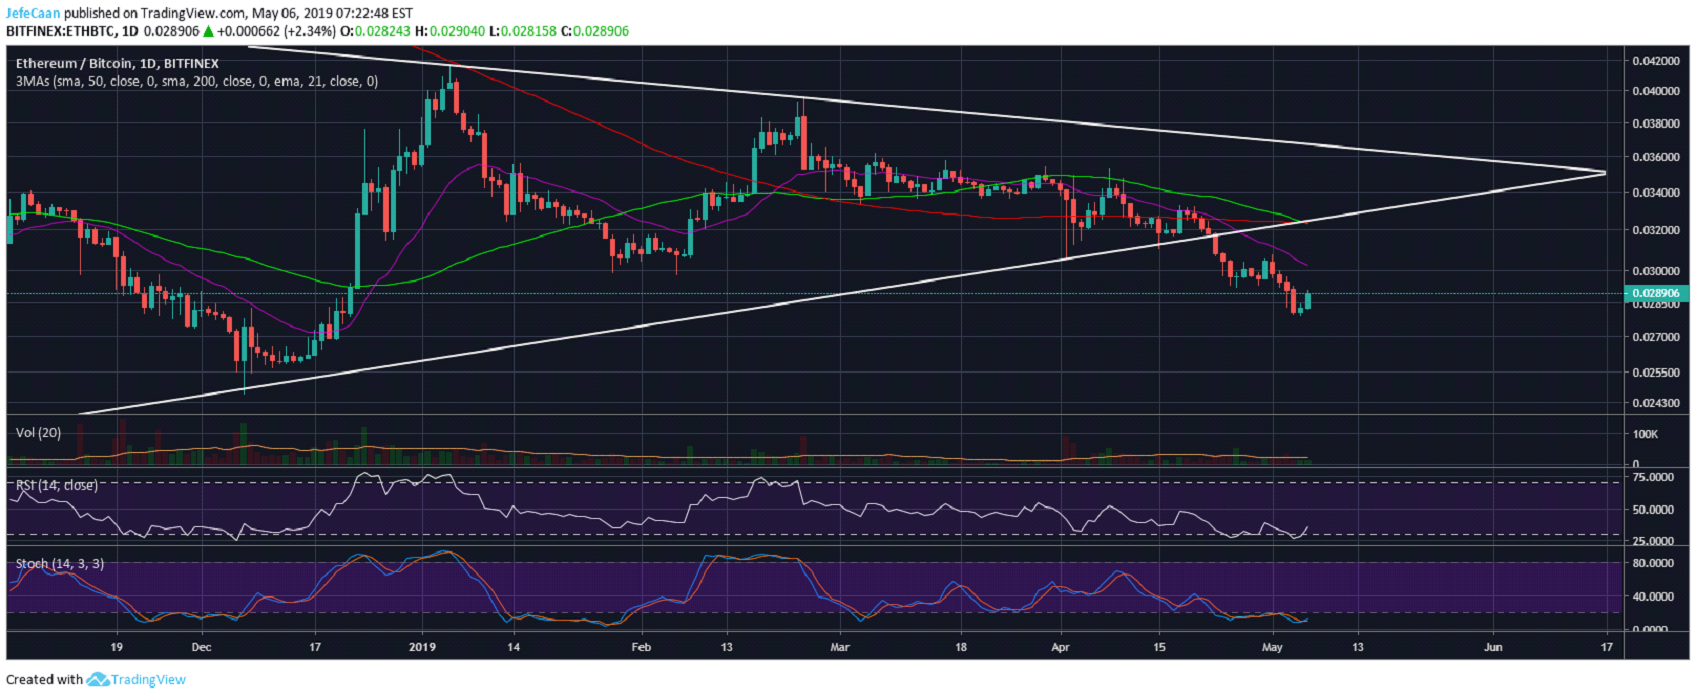 Ethereum (ETH) Still Has Room To Rise Again Before The Next Big Decline